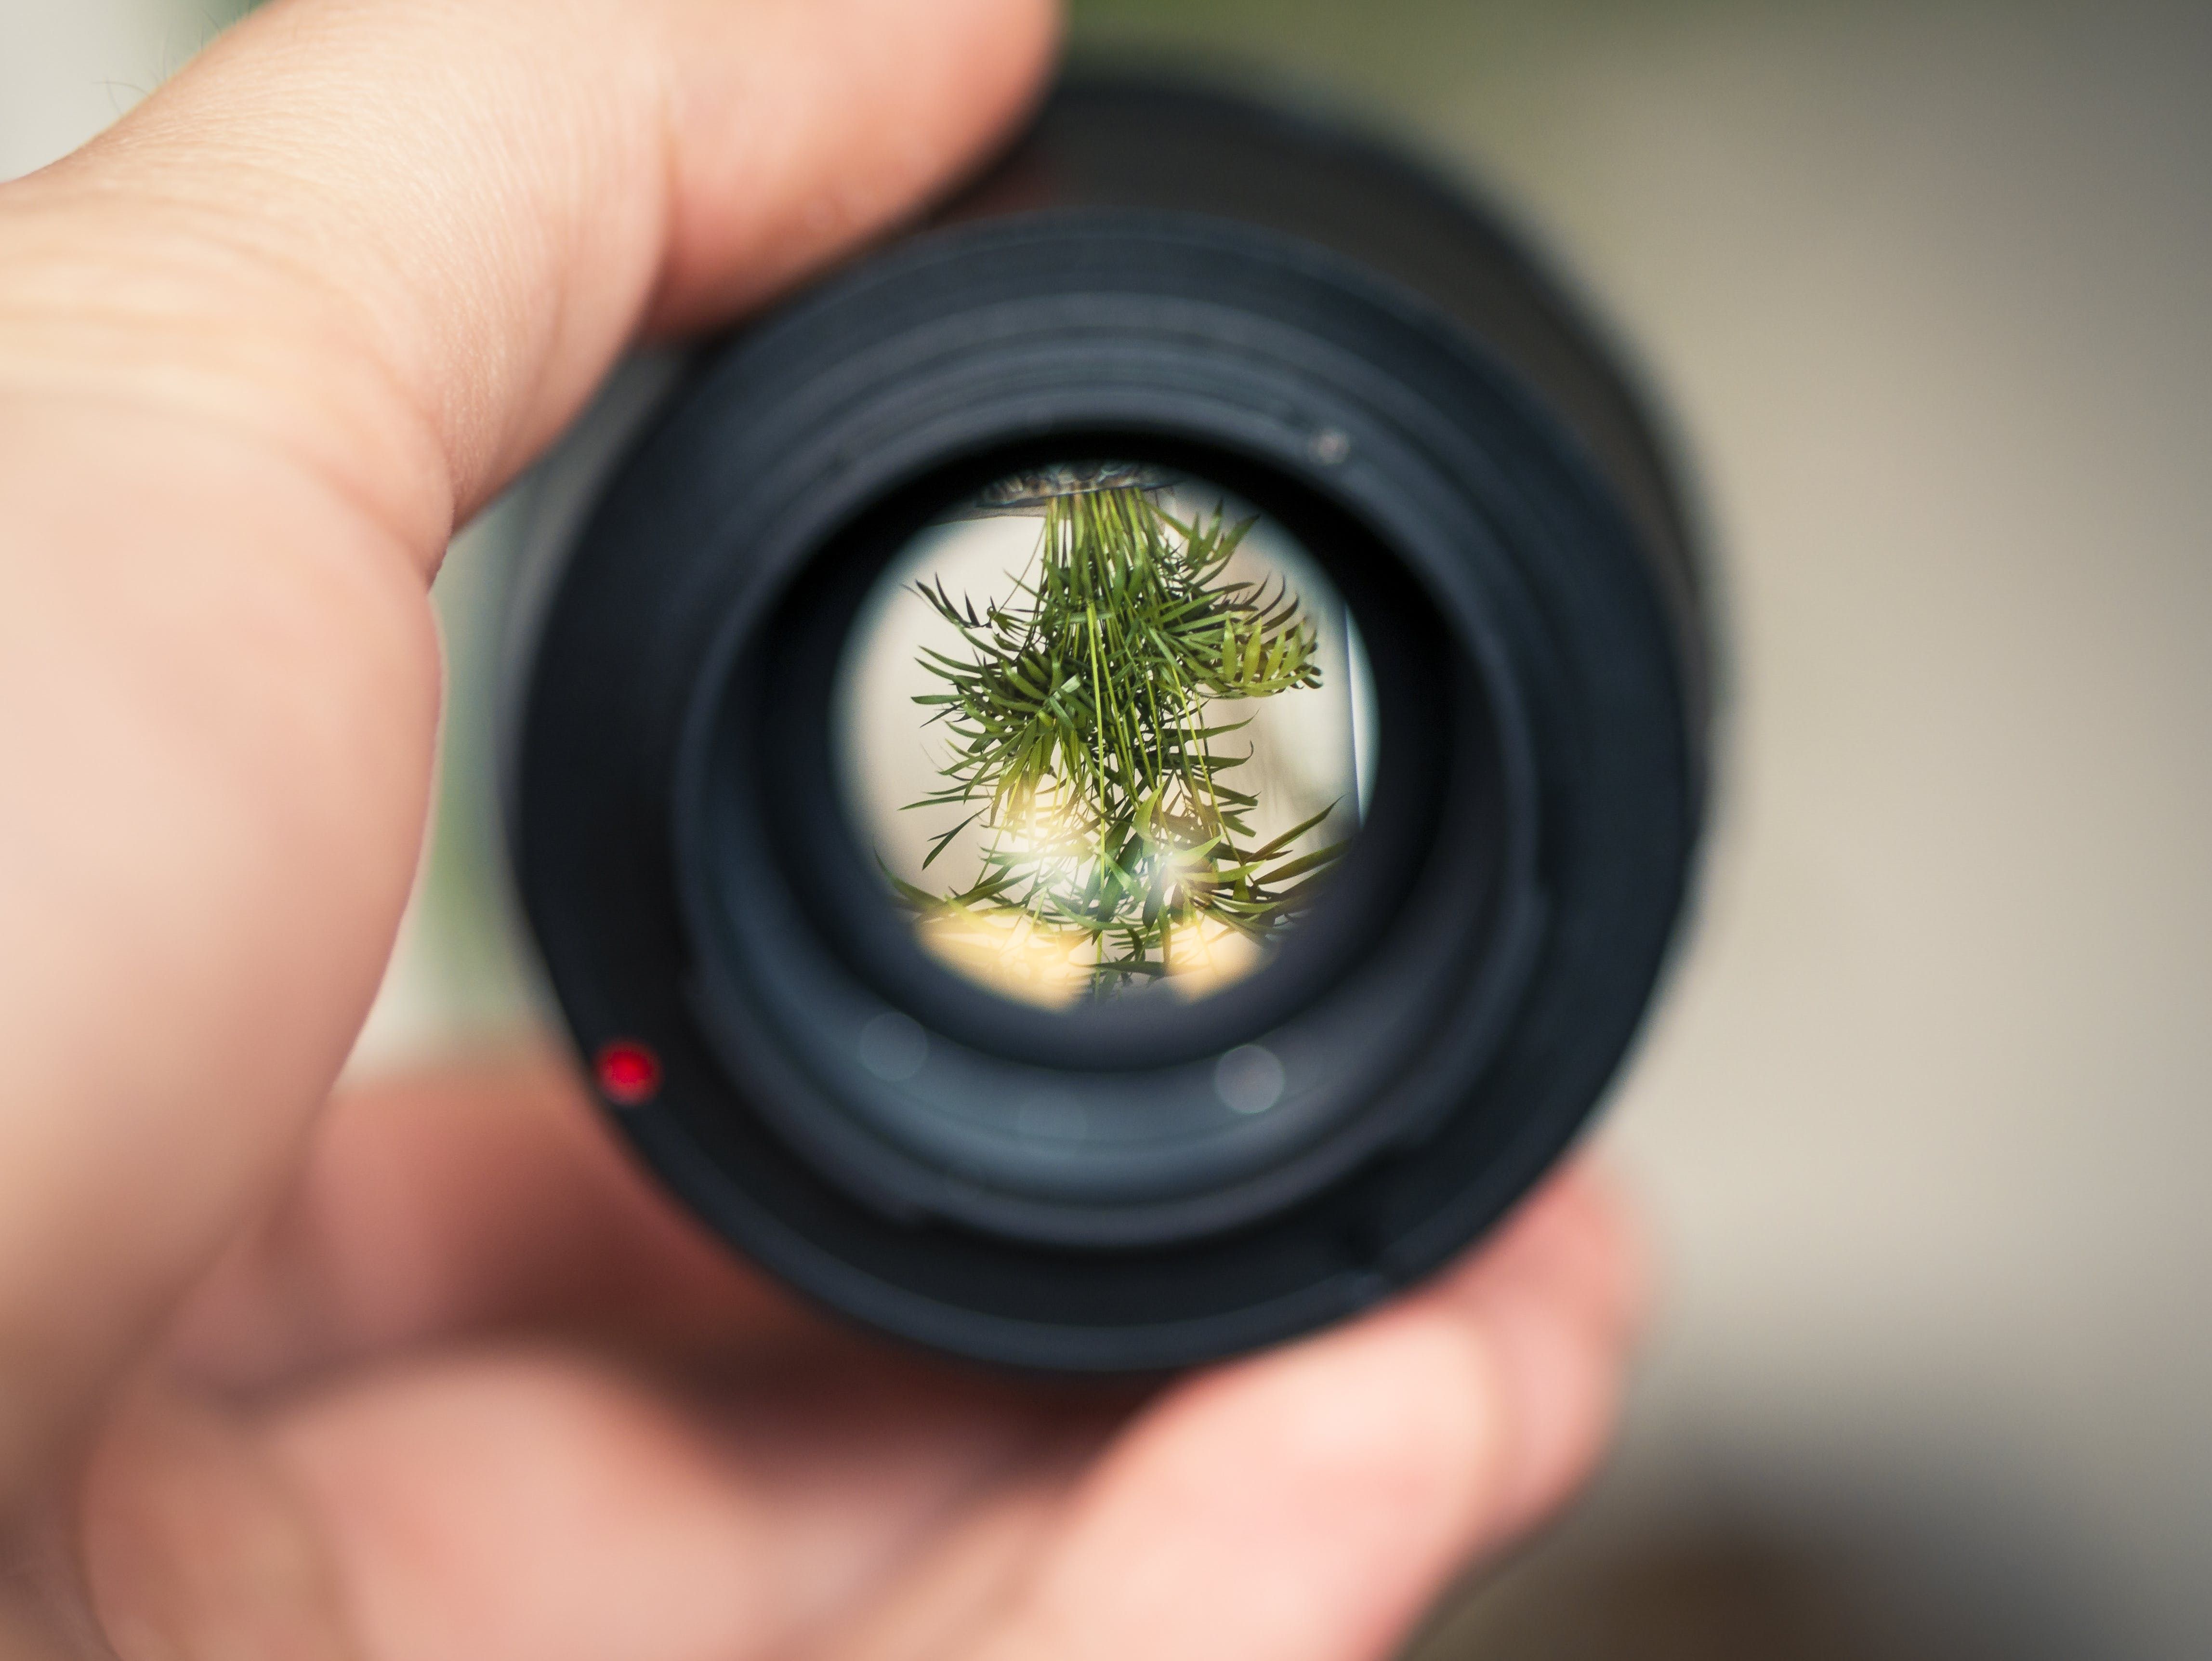 Person Holding Black Smartphone Camera Lens Capturing Green Plant in Selective Focus Photography